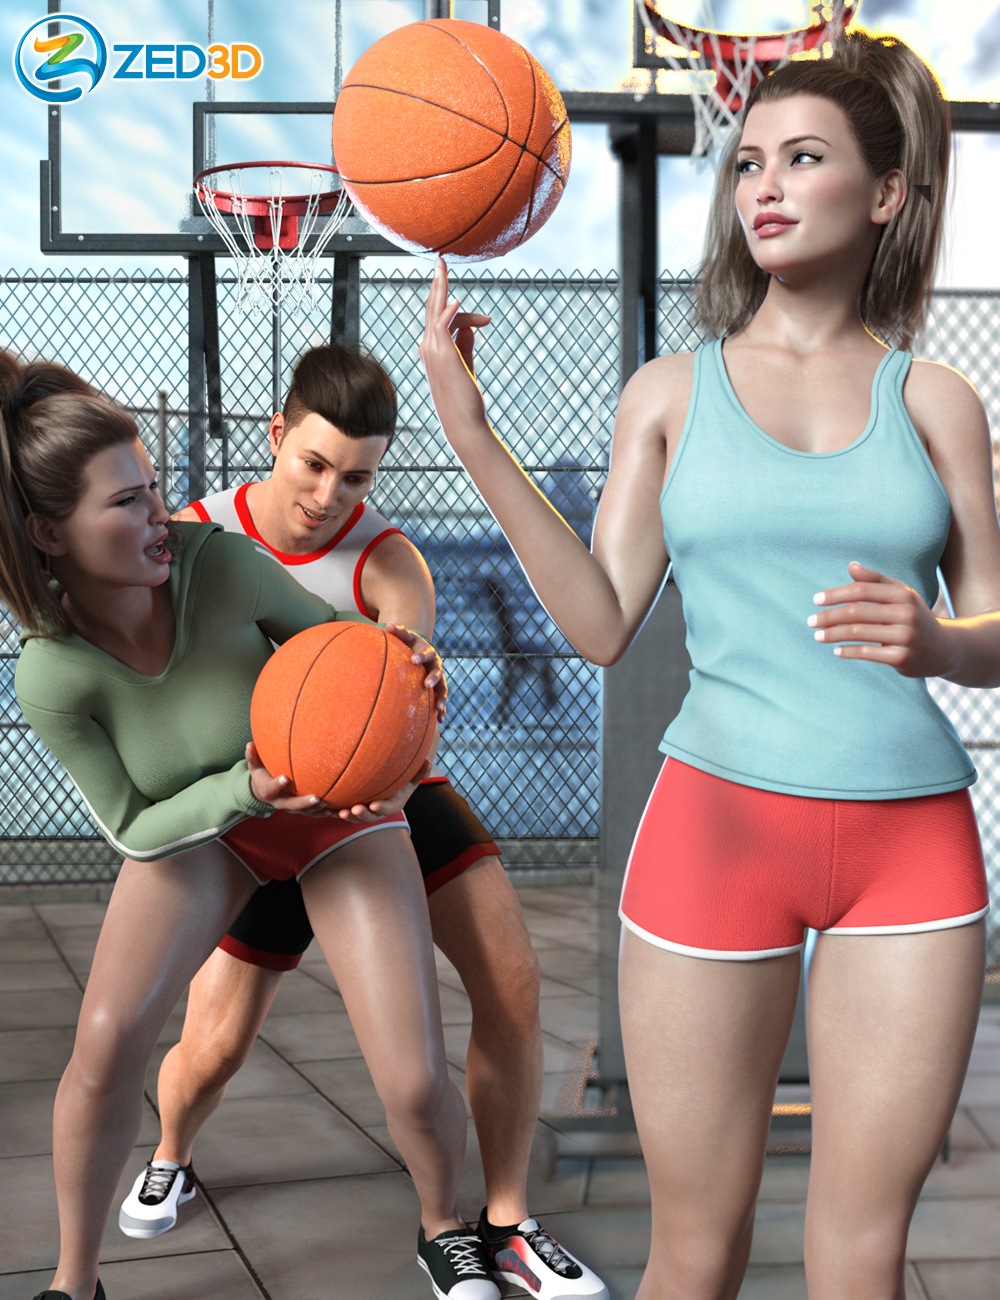 Z Shooting Hoops Scene and Poses for Genesis 8 by: Zeddicuss, 3D Models by Daz 3D